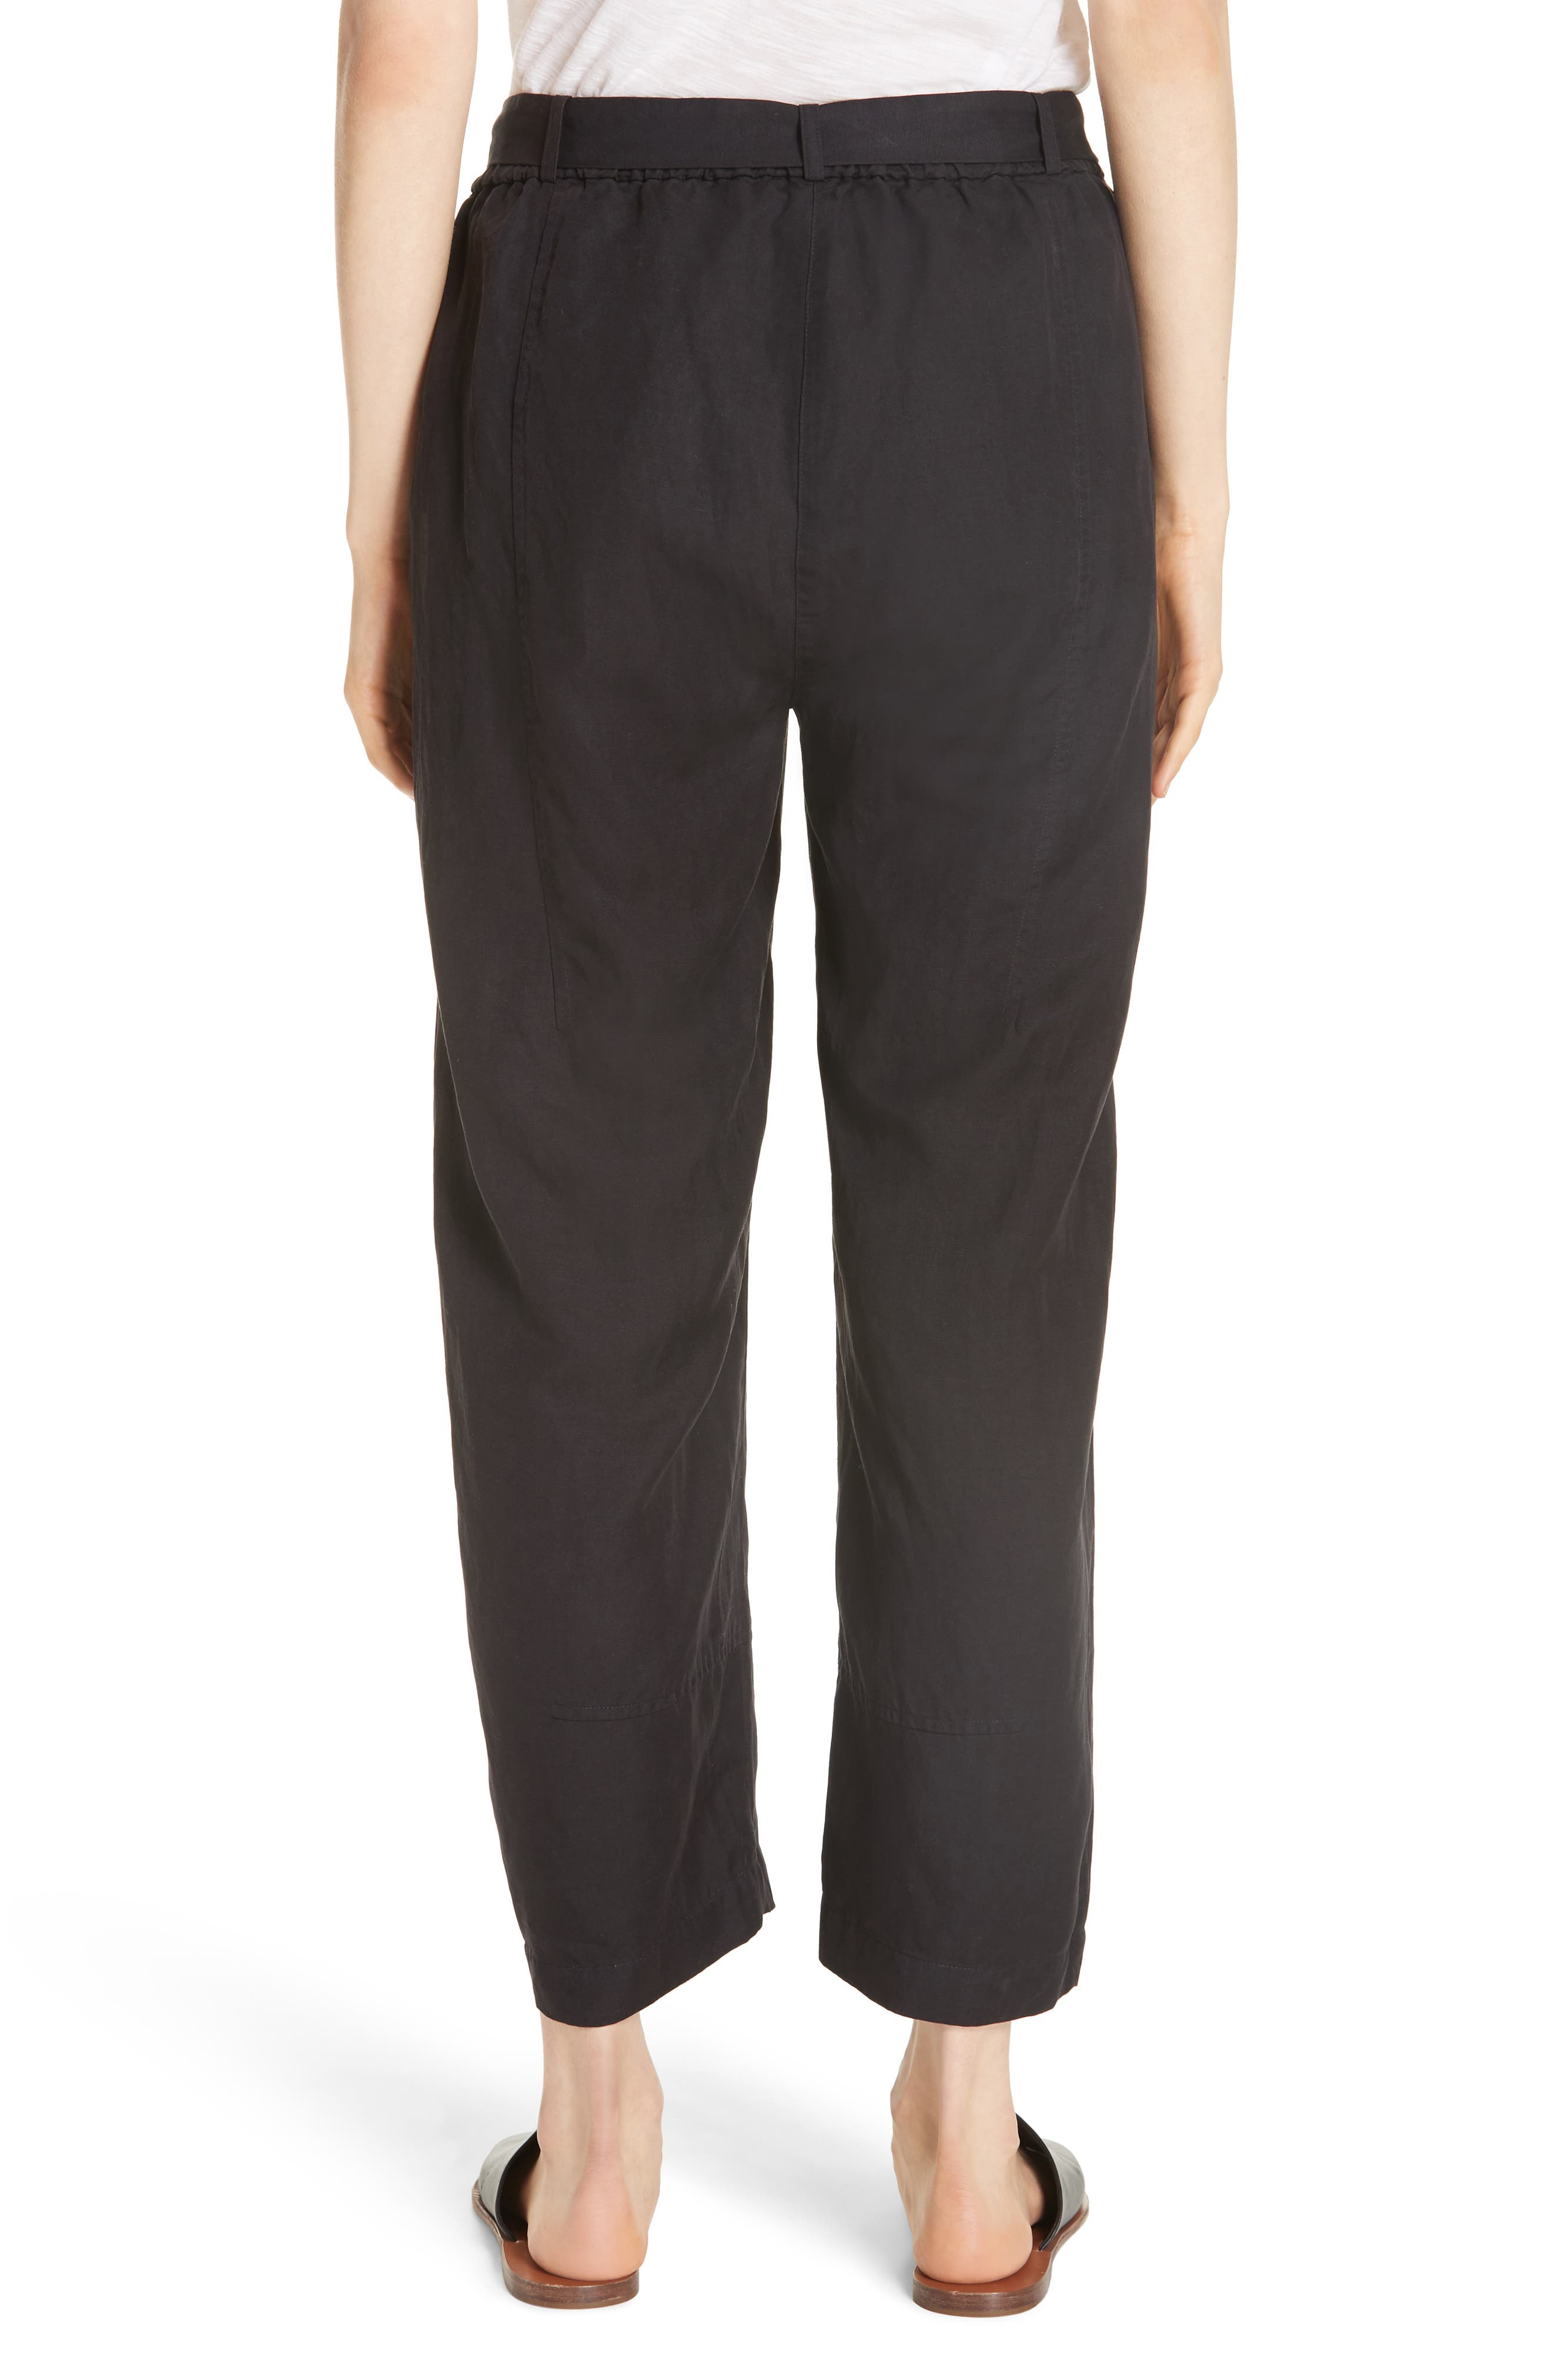 EILEEN FISHER, Lantern Twill Ankle Pants, Alternate thumbnail 2, color, 001